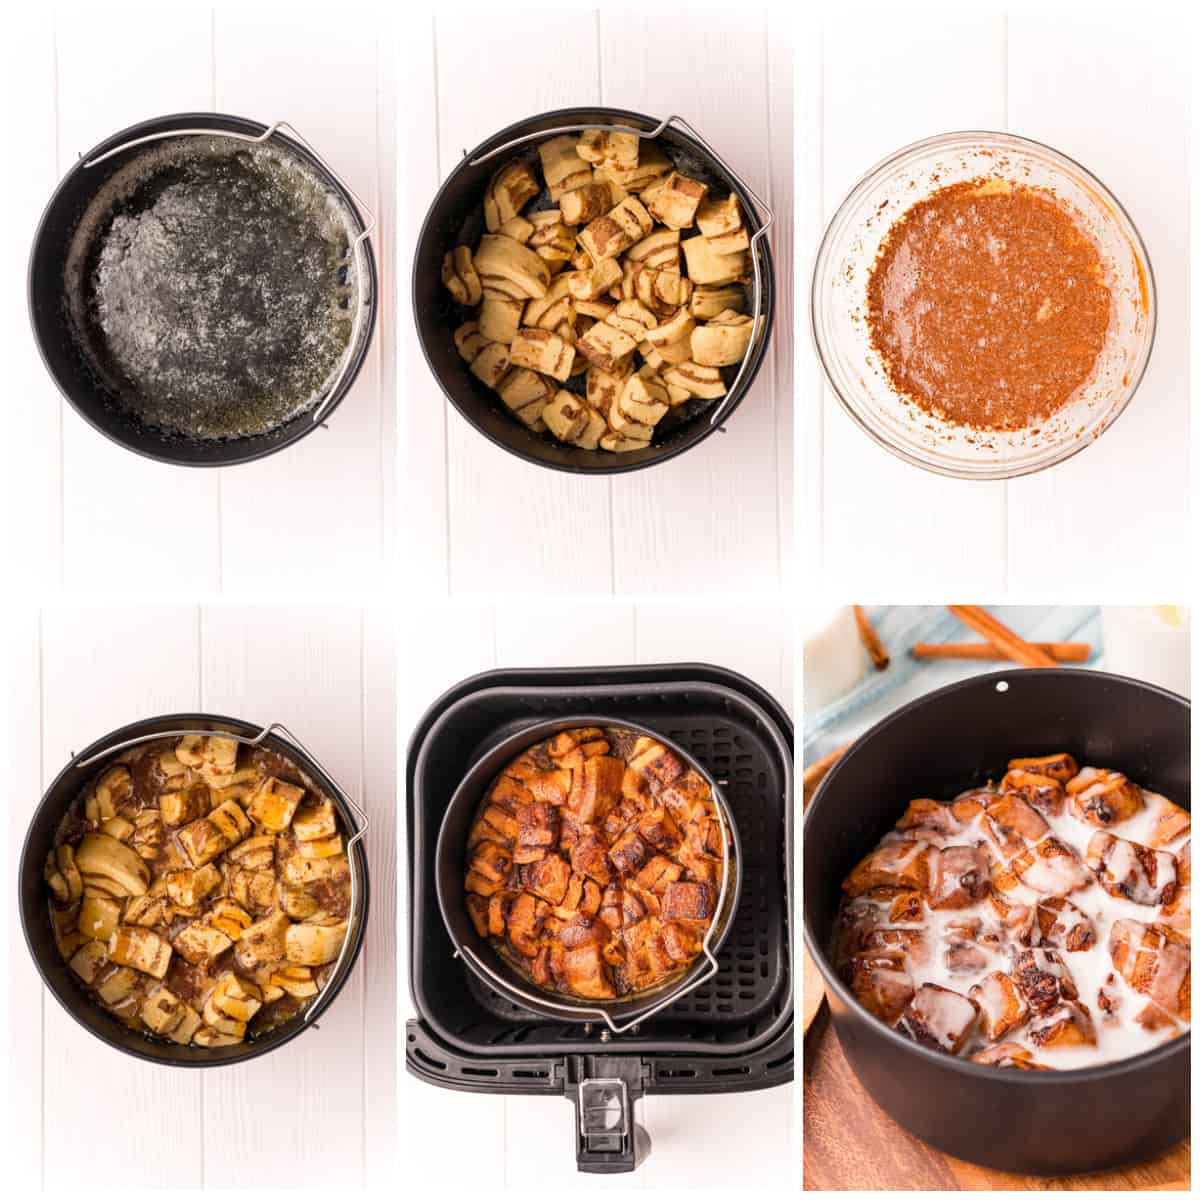 Step by step photos on how to make Air Fryer Cinnamon Roll Casserole